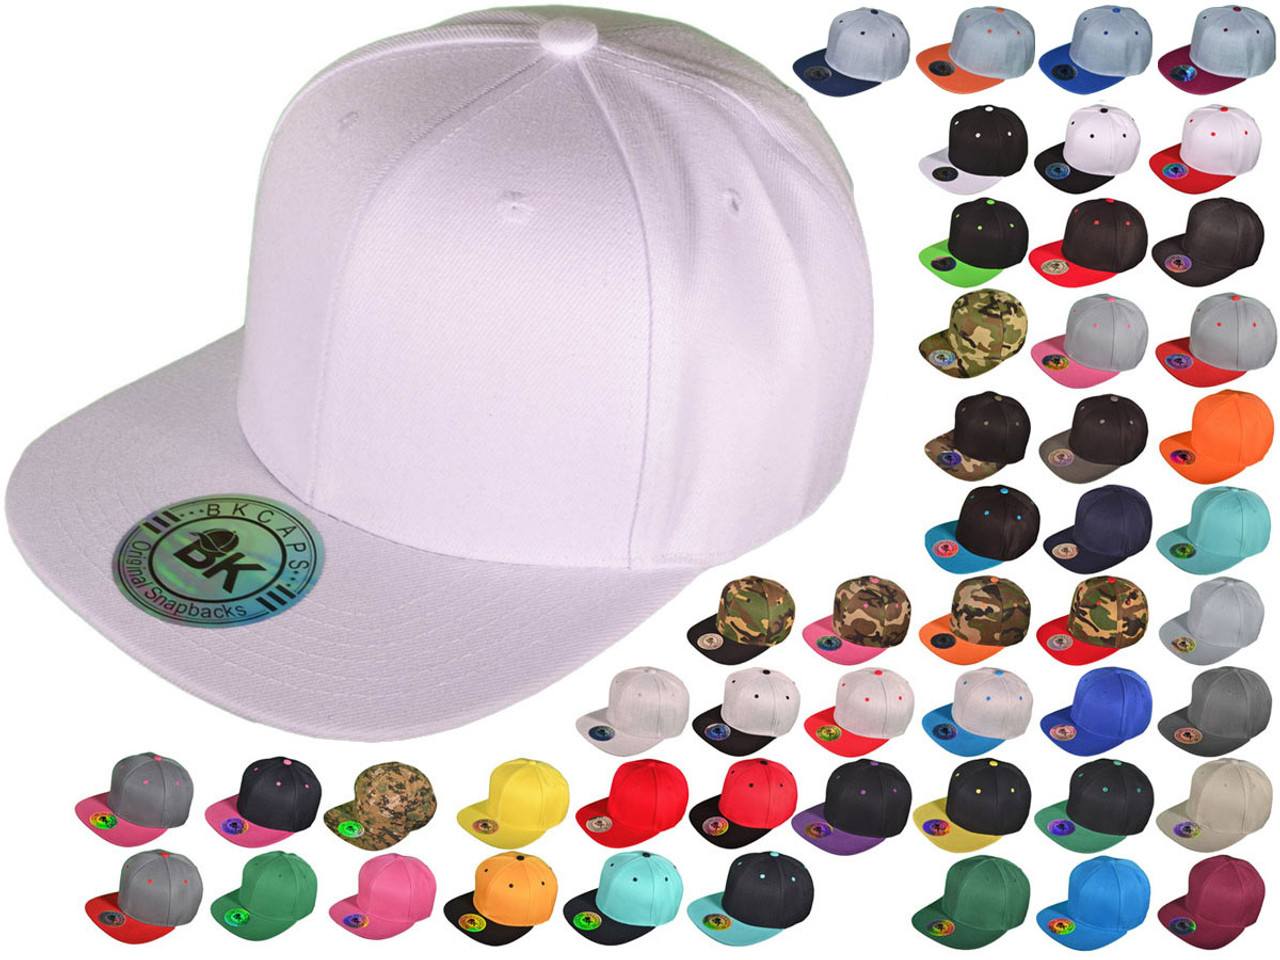 ccc31fca Blank Snapback Hats - BK Caps Flat Bill Plain Vintage Snapbacks with Same  Color Underbill - 3003